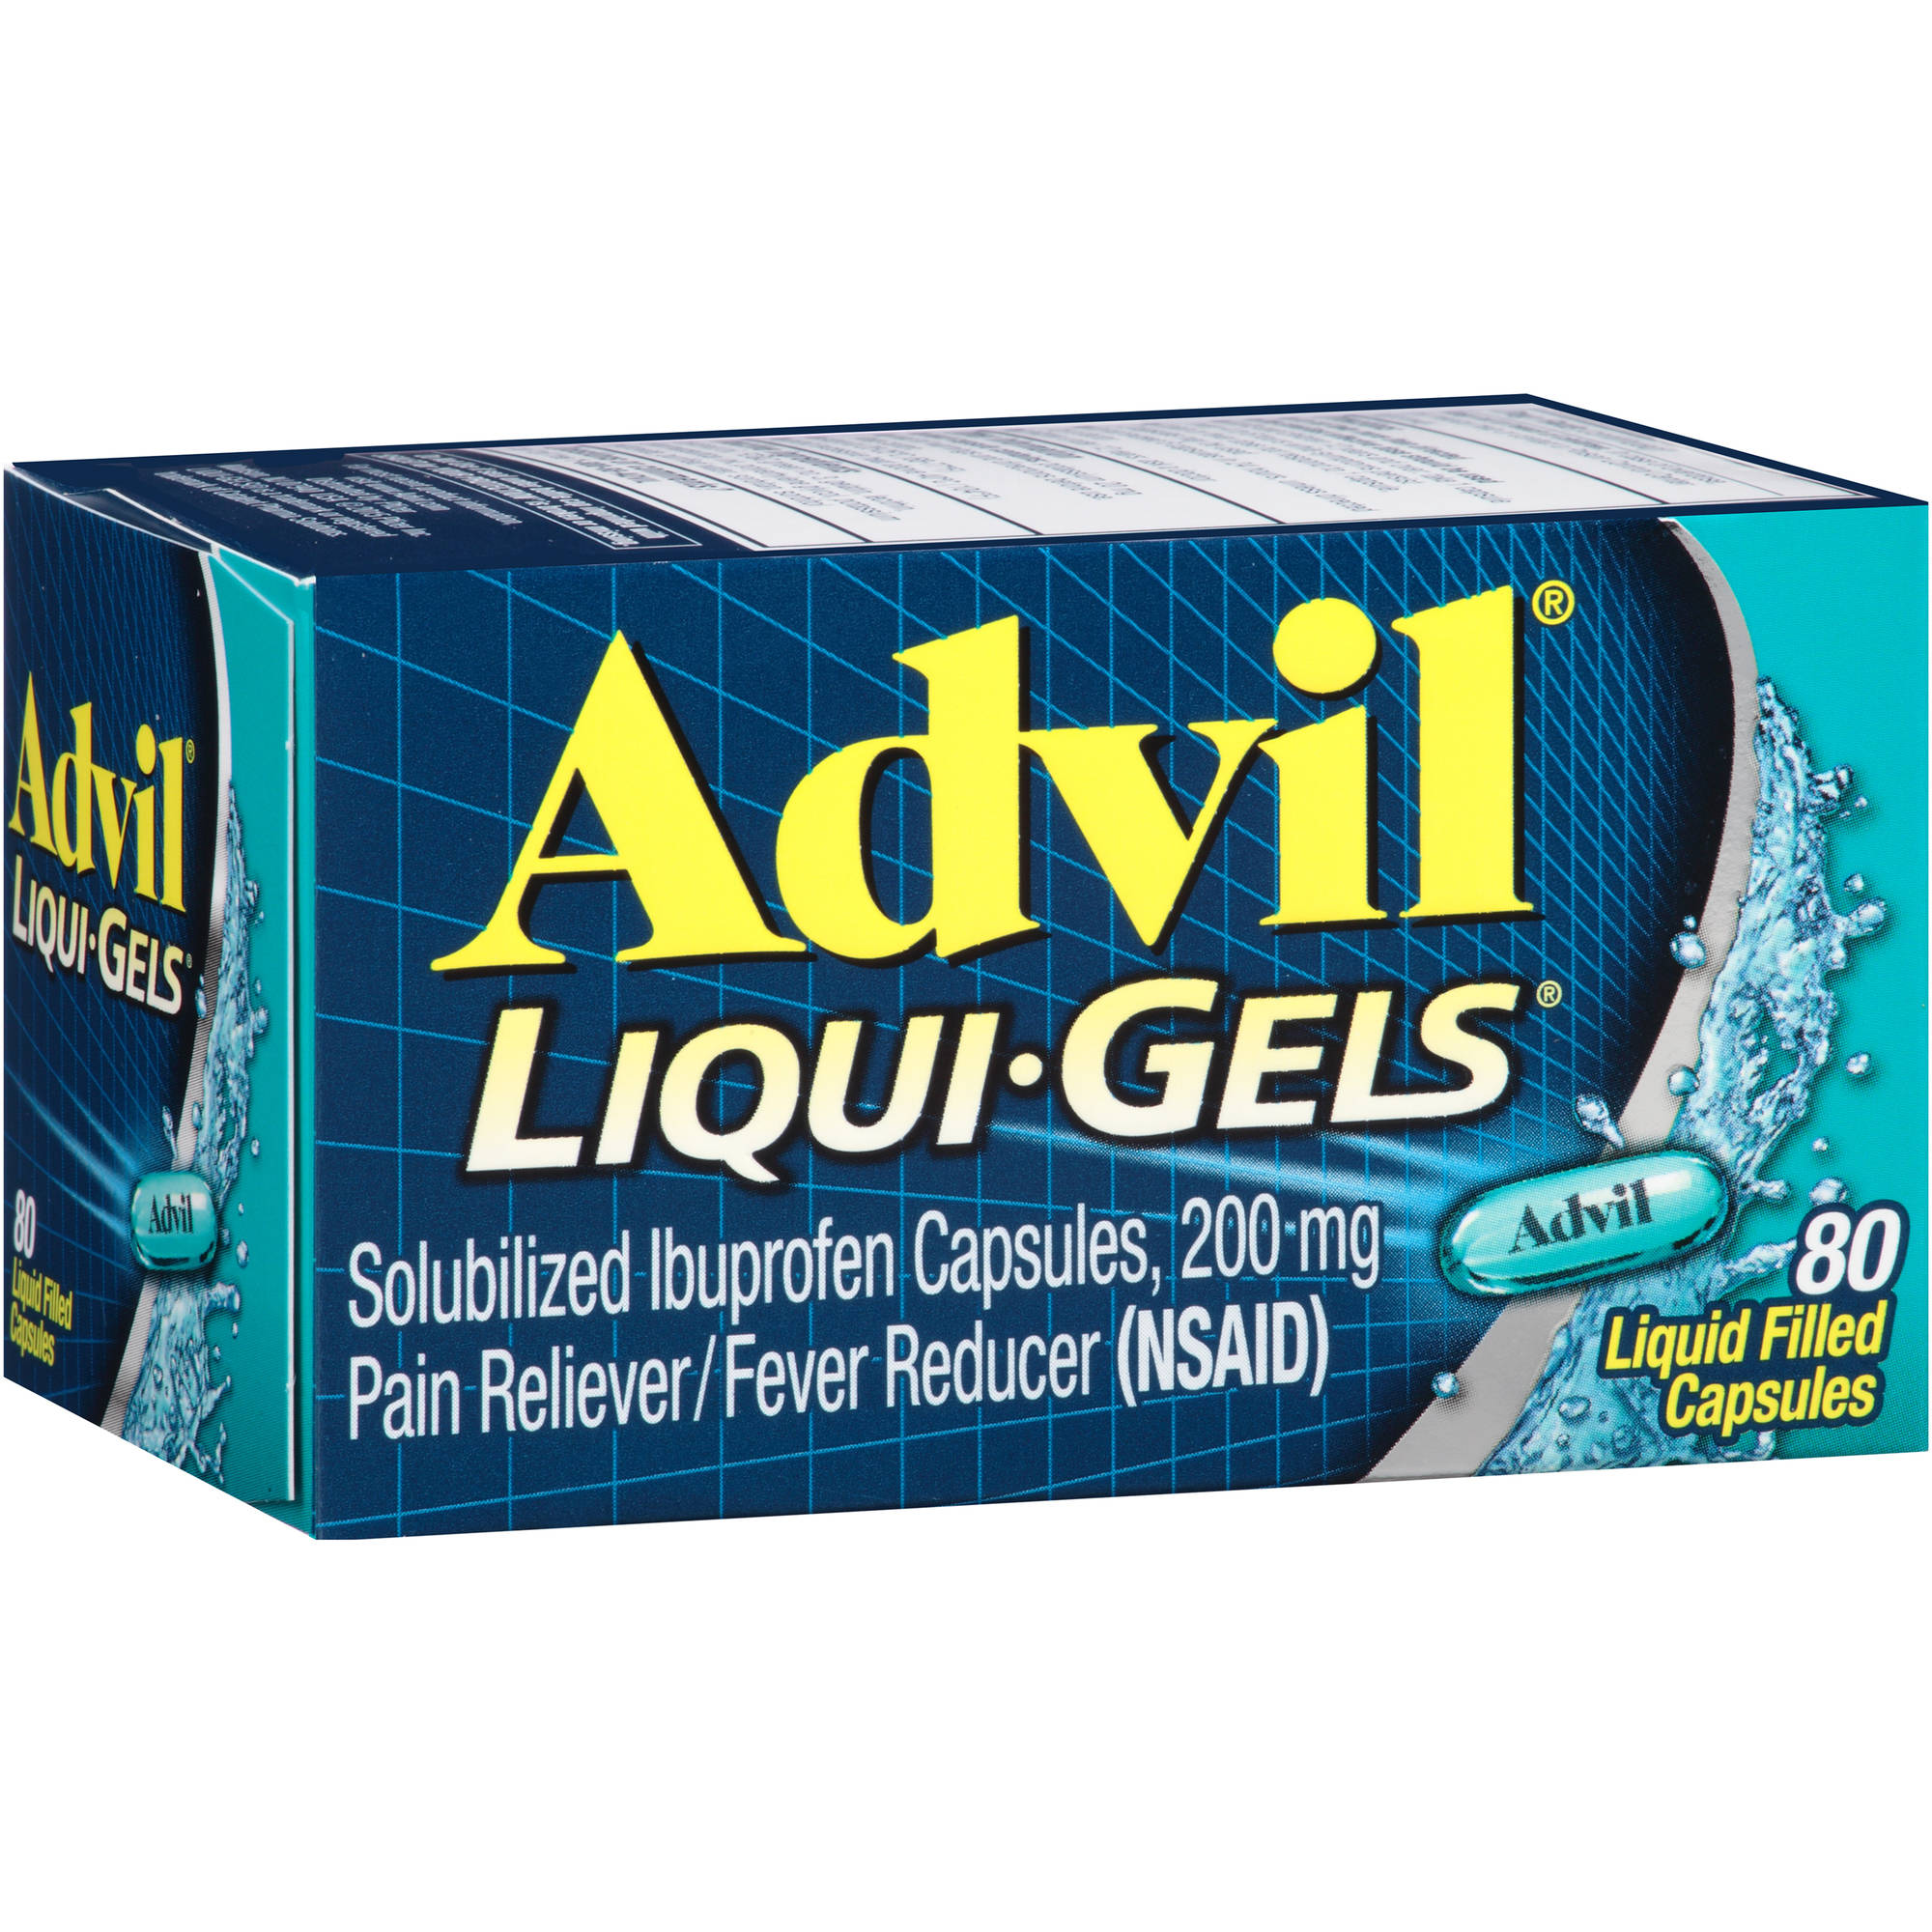 Advil Liqui-Gels Pain Reliever / Fever Reducer (Ibuprofen), 200 mg 80 count